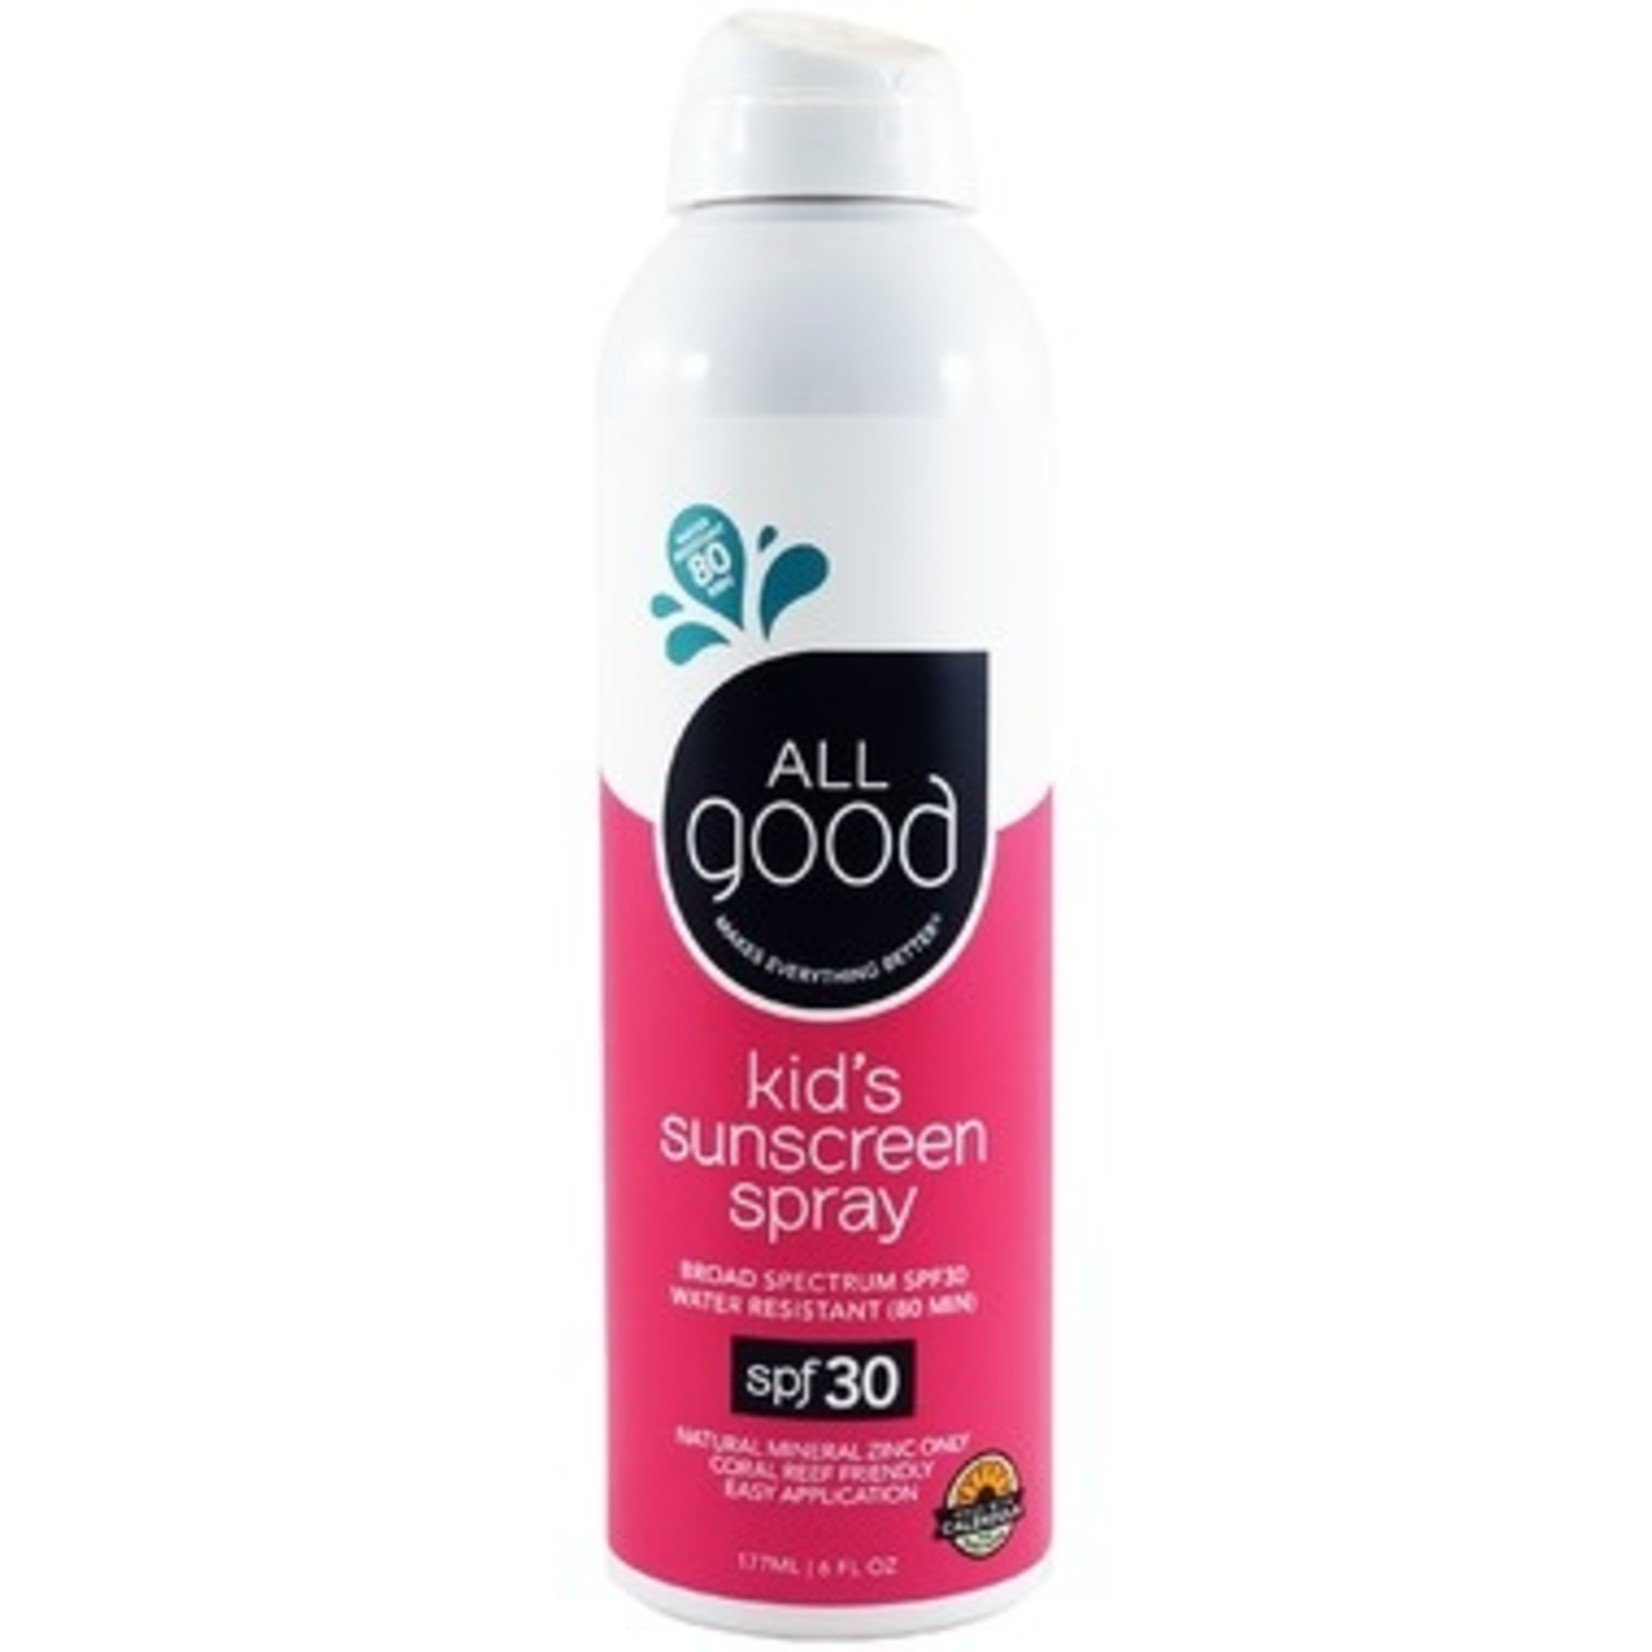 All Good Kid's Suncreen Spray SPF 30 177ml